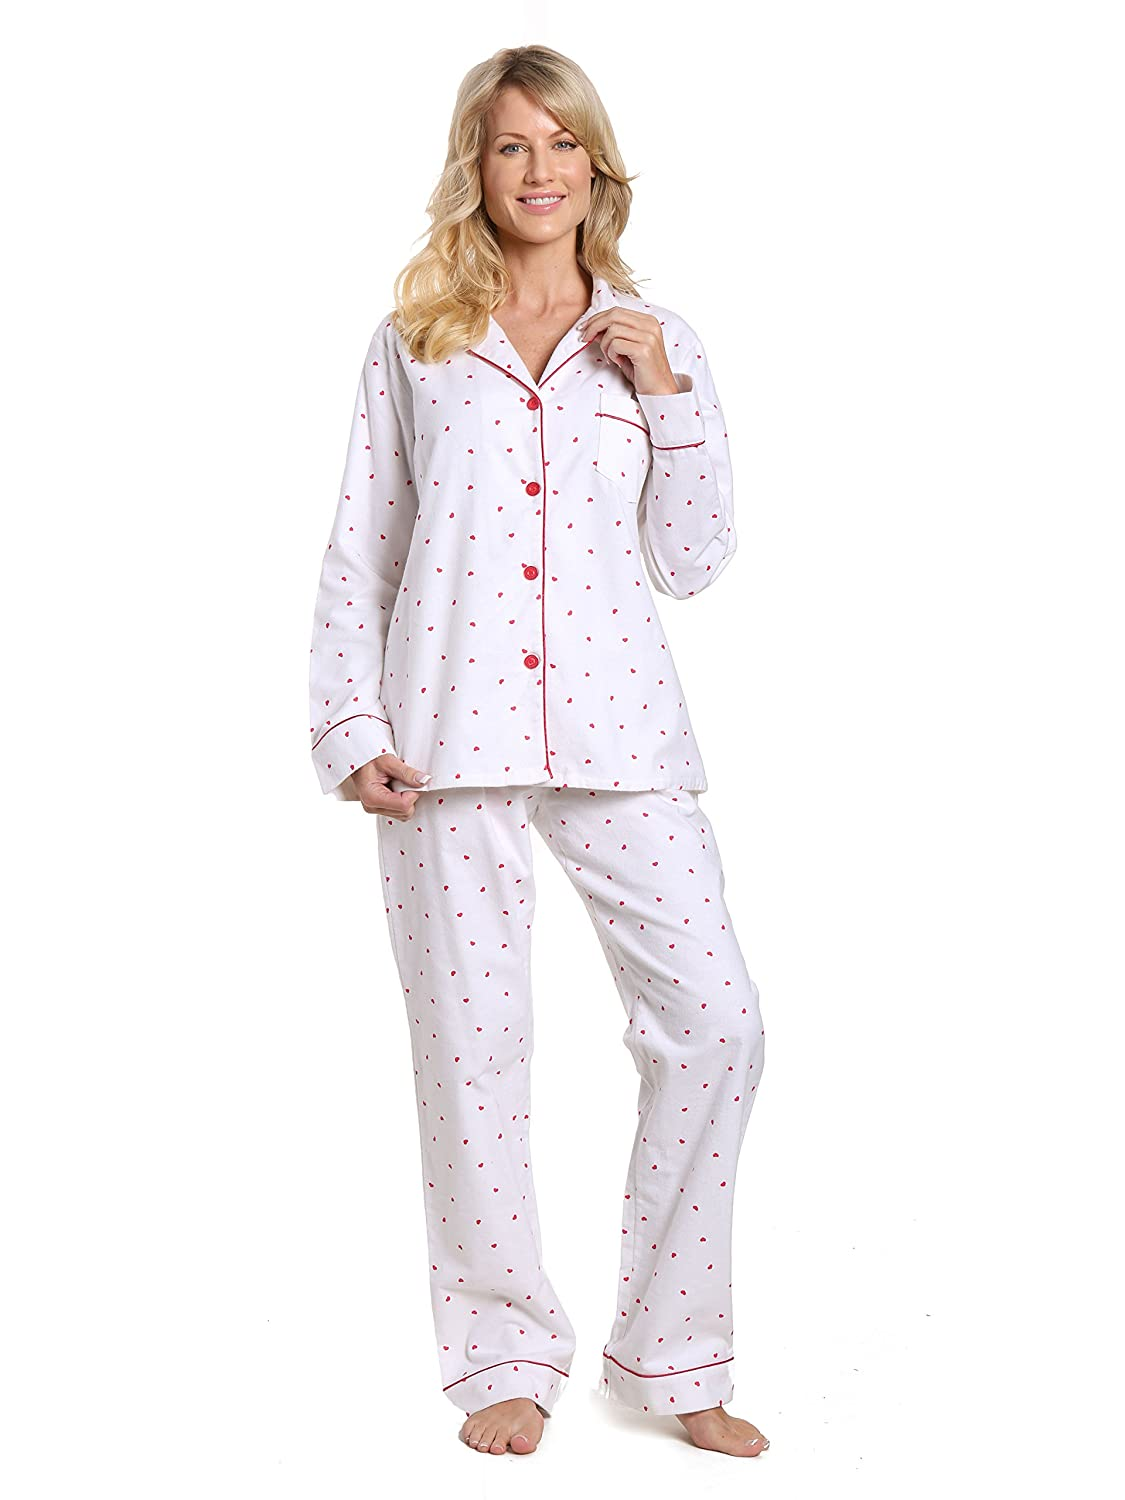 Twin Boat Womens 100% Cotton Flannel Pajama Sleepwear Set